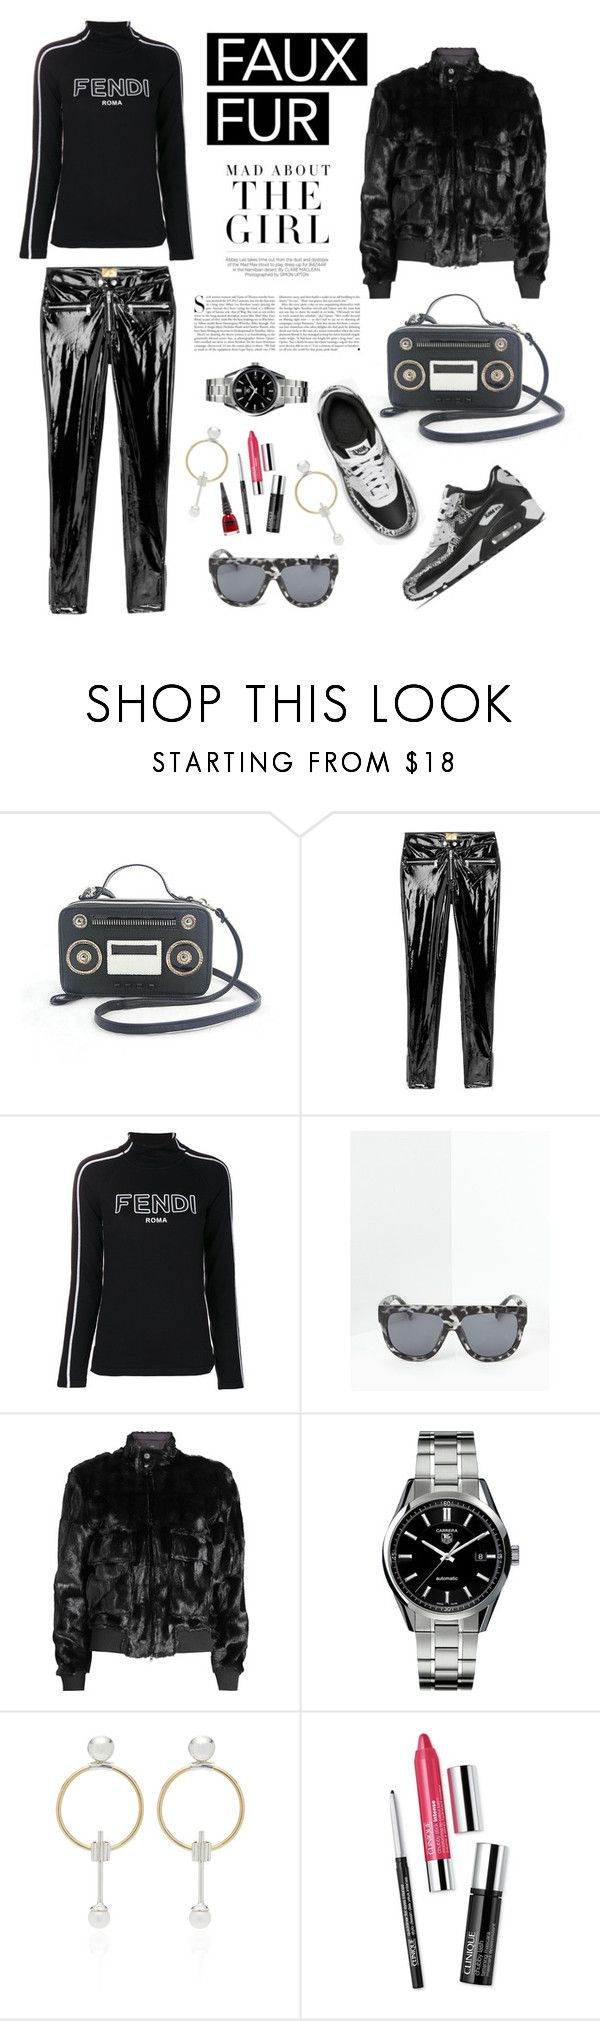 """""""Wow Factor: Faux Fur"""" by shortyluv718 ❤ liked on Polyvore featuring Kershaw, Fendi, Missguided, Steffen Schraut, TAG Heuer, Wasson, Clinique, Manic Panic NYC and fauxfur"""